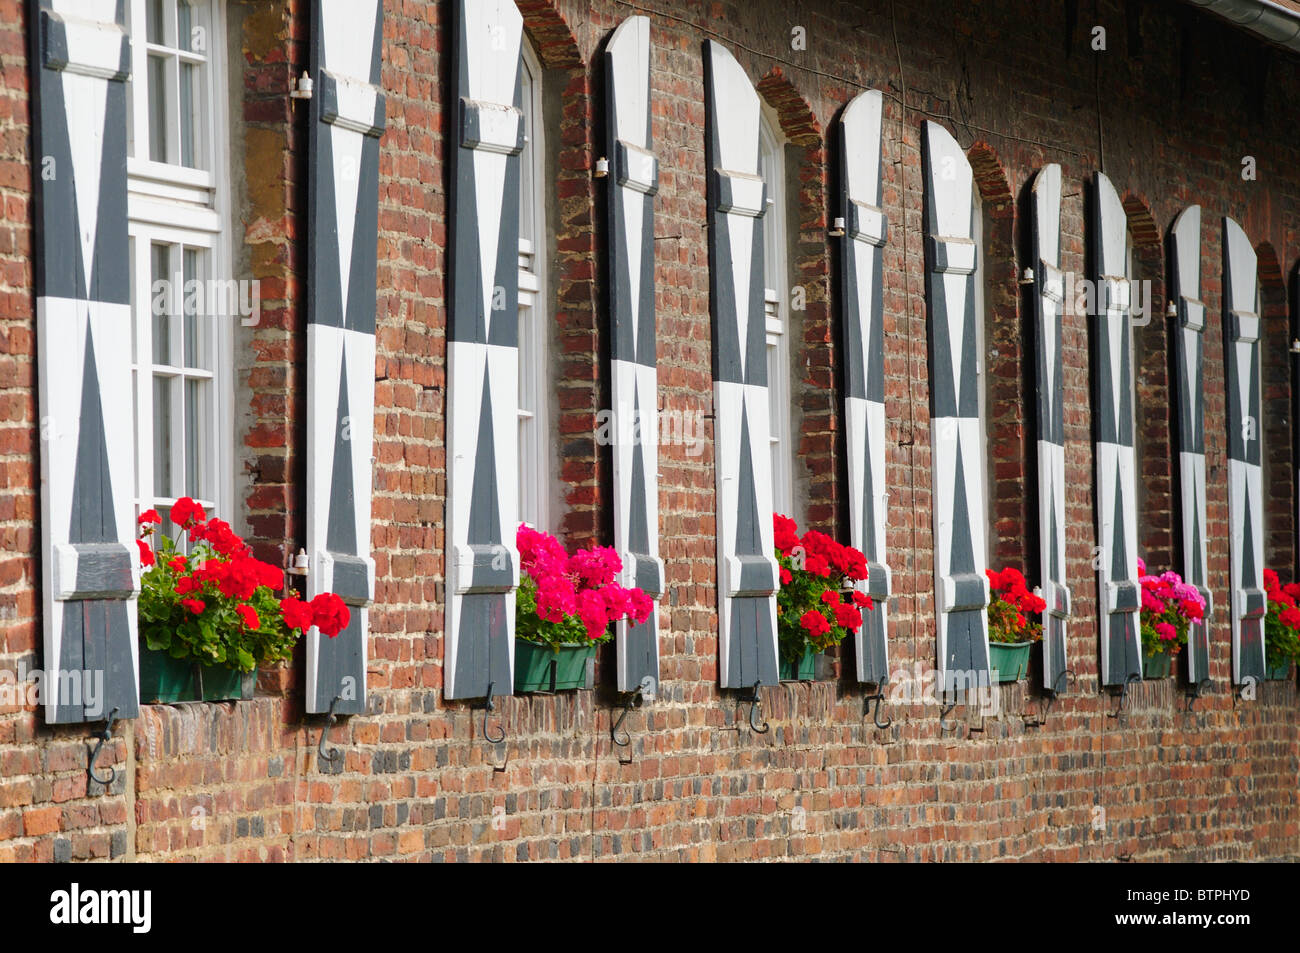 Germany, Münsterland, Schloss Lembeck, Exterior of a building with window boxes - Stock Image